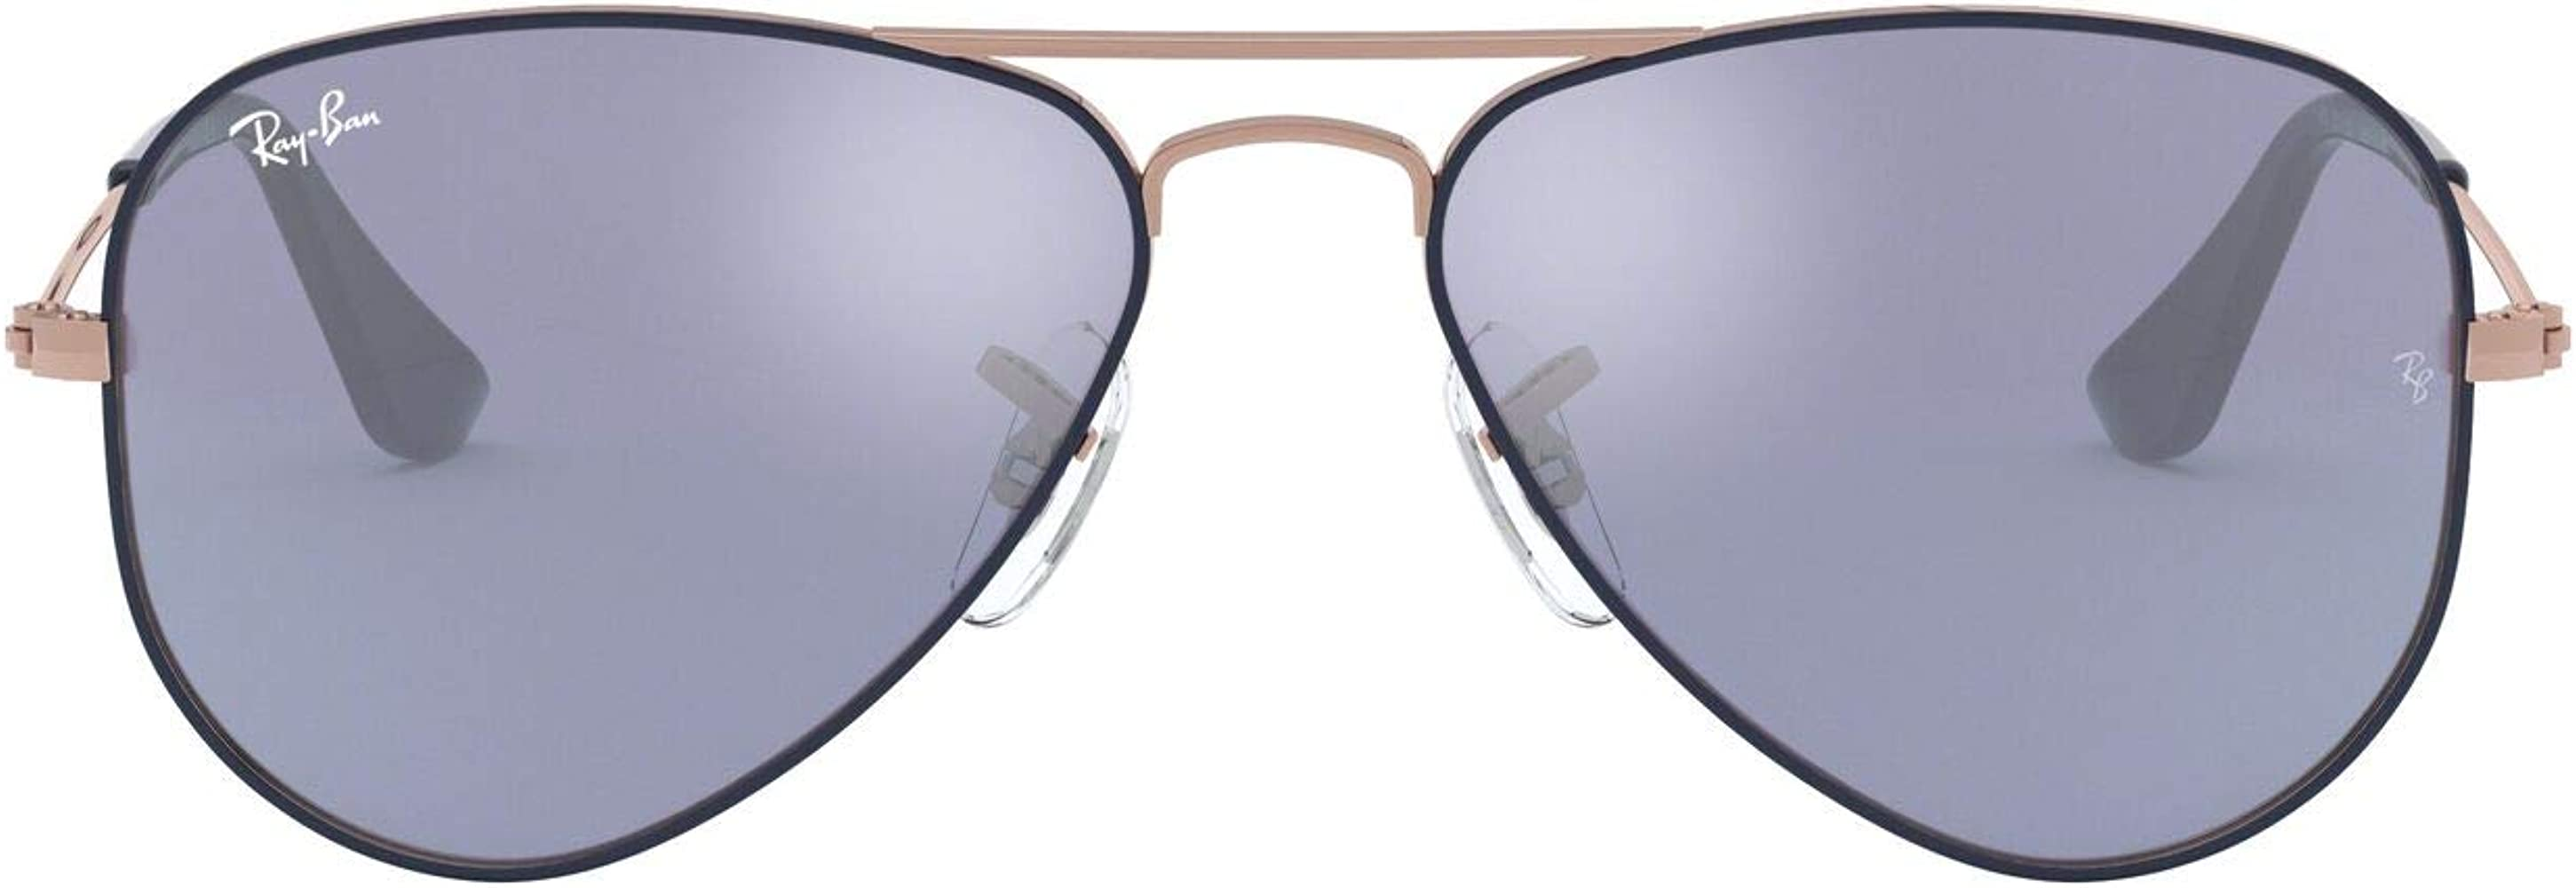 Ray-Ban JUNIOR 0rj9506s 264/1u 50 Gafas de sol, Copper Top on Blue ...